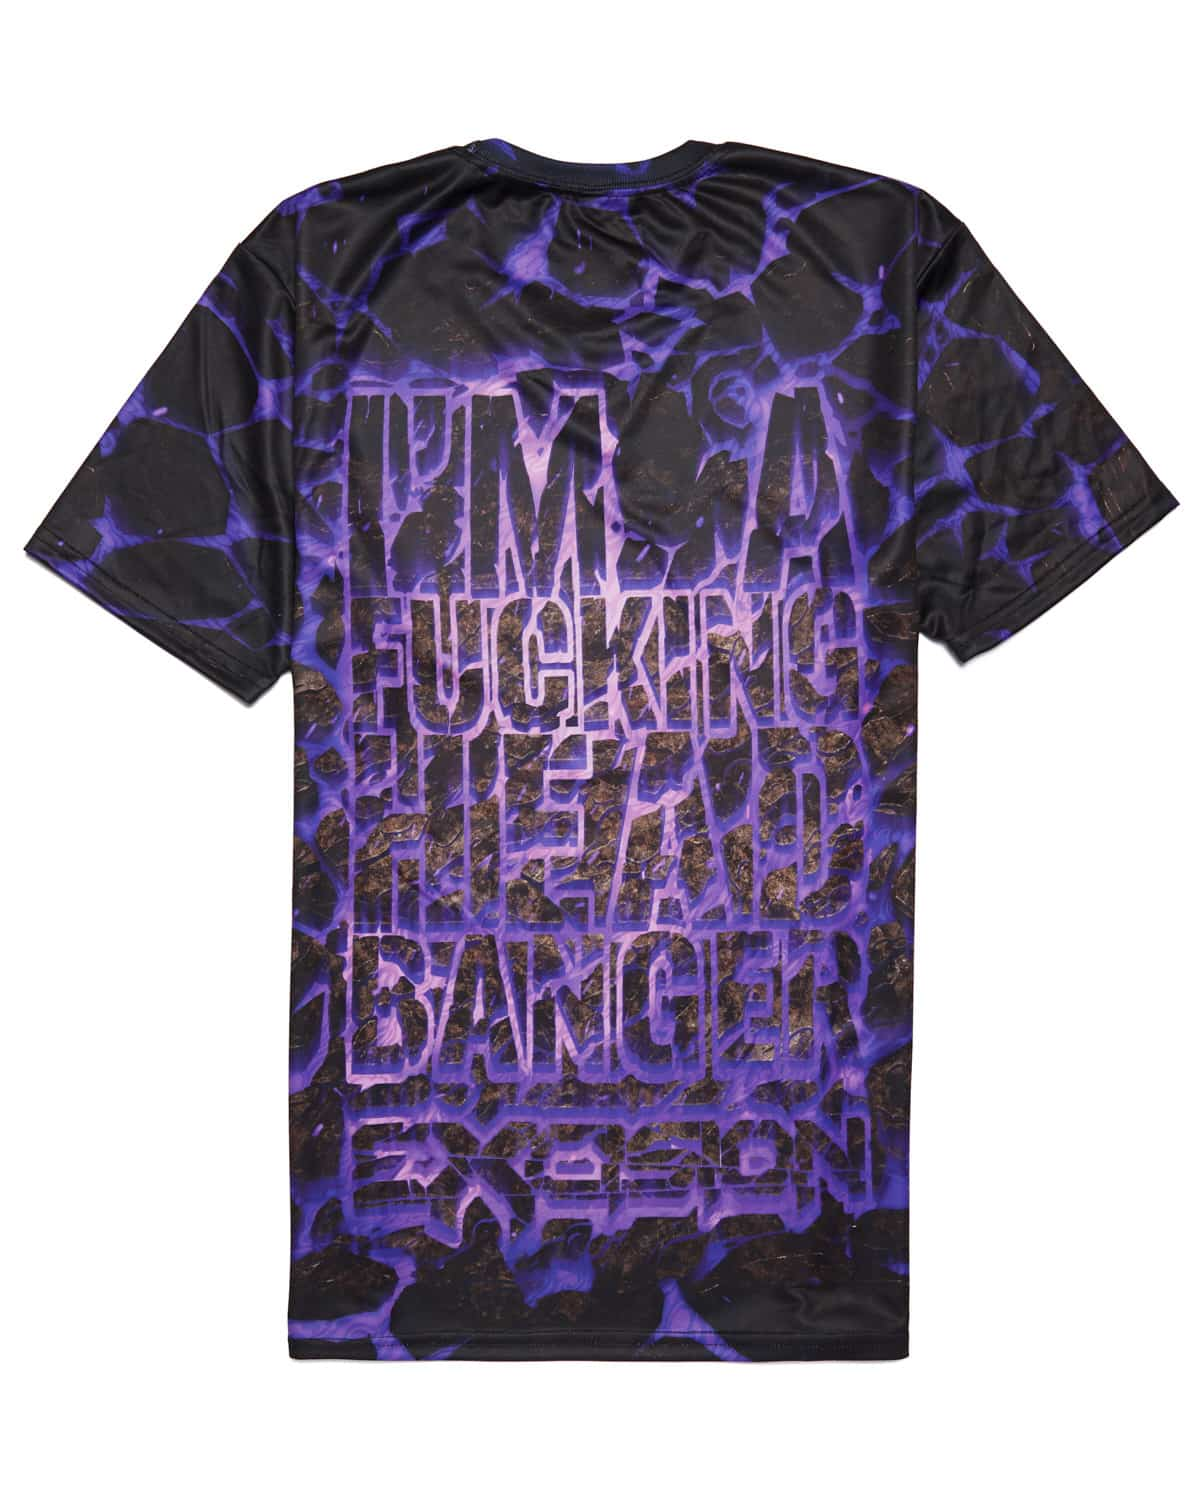 Excision 'Headbanger' Dye Sub Unisex T-Shirt - Purple